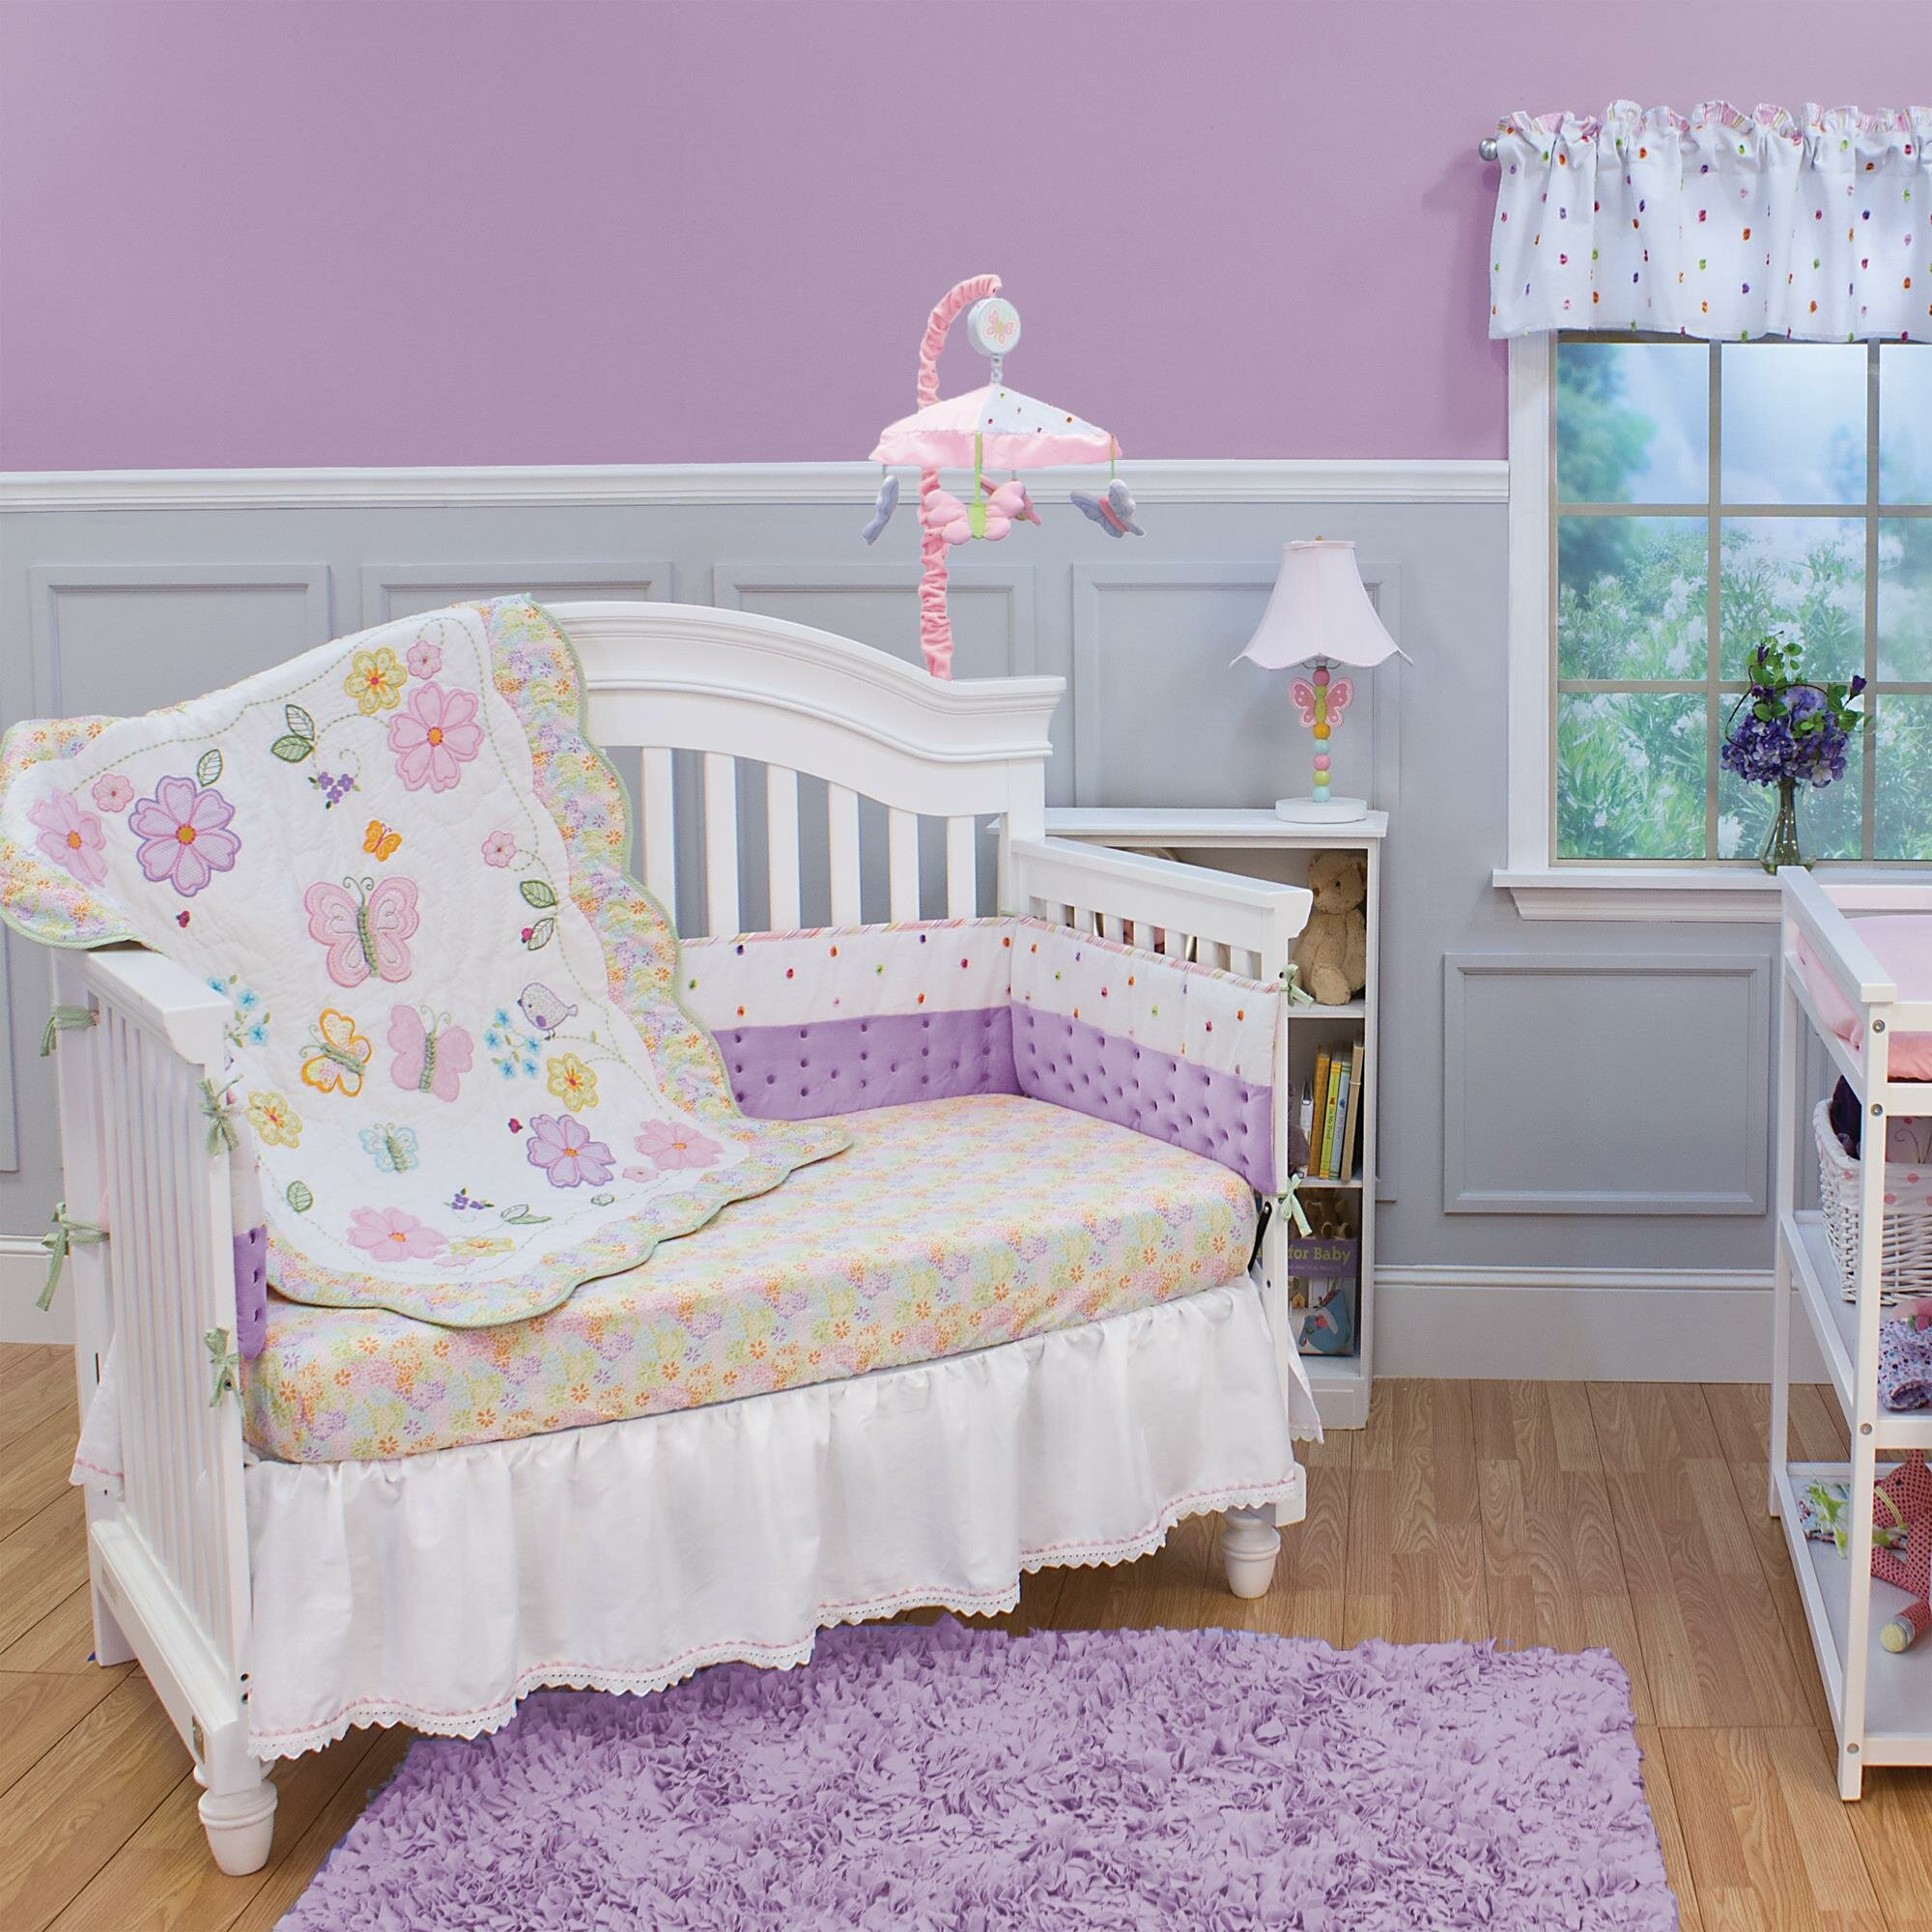 girls furniture table for of picture lamp white toy baby curtain bedding valance nursery shag butterfly set size with patterned modern crib wall full fabulous pink top bedroom rug comforter espresso sets